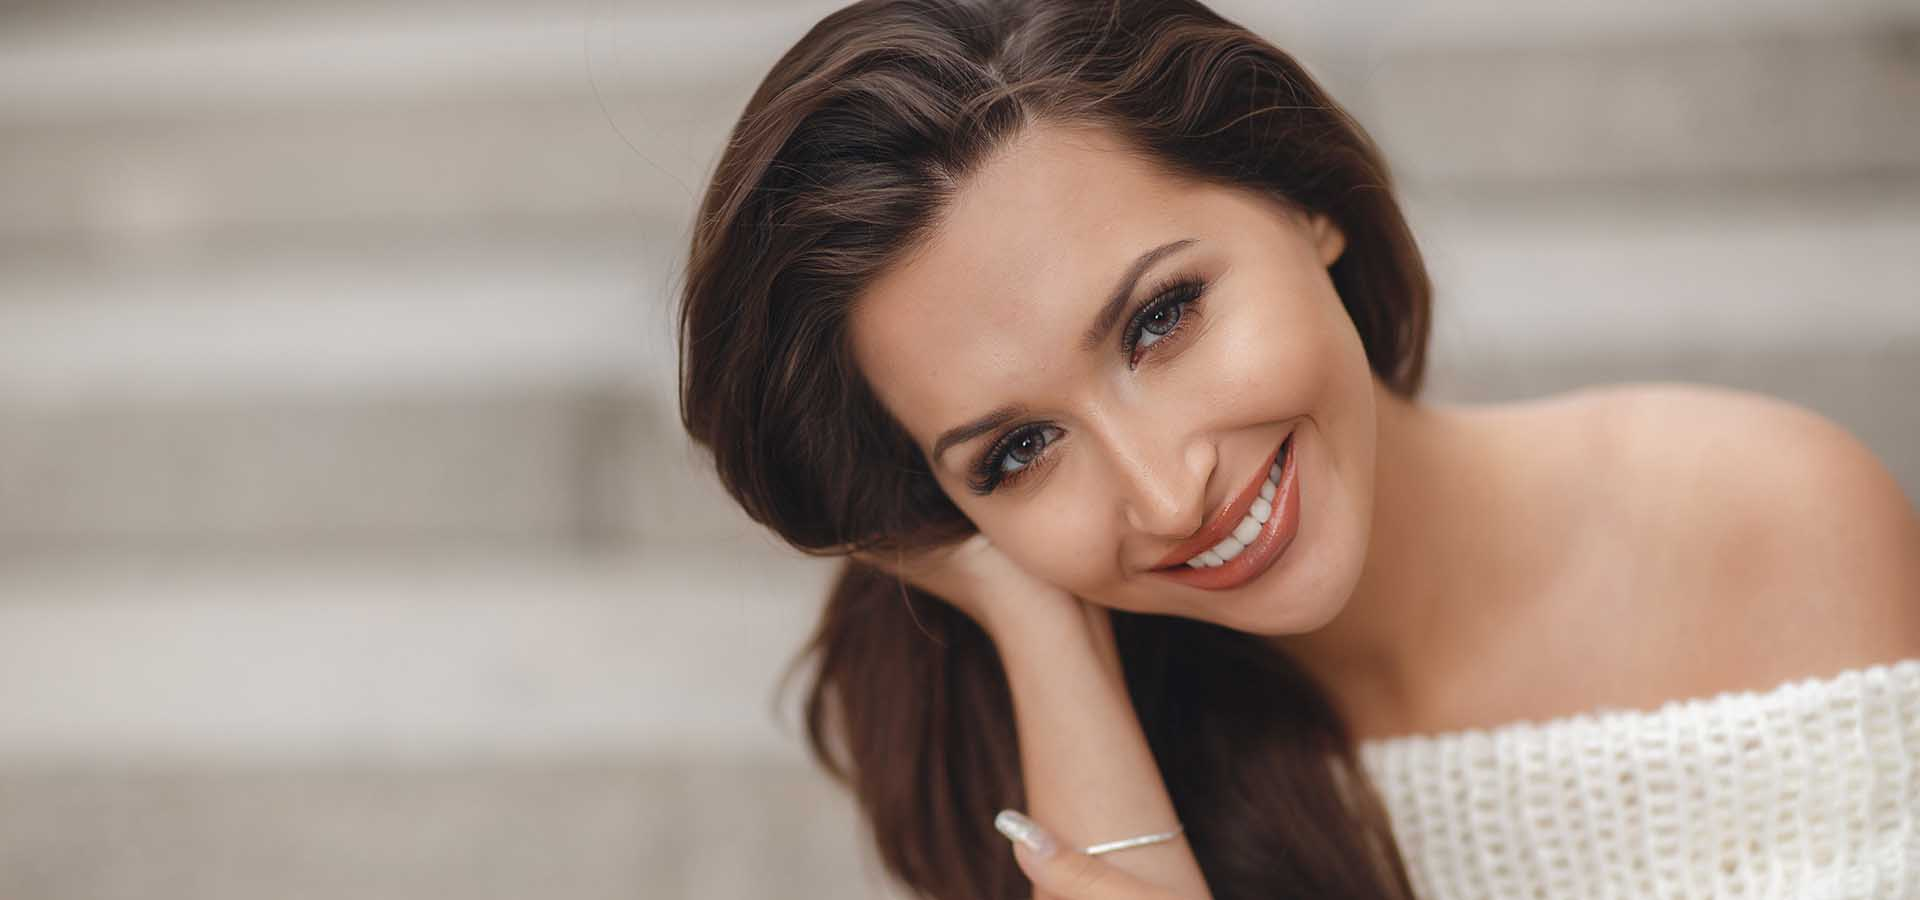 Bright portrait of beautiful brunette woman with long straight hair, long eyelashes, grey eyes, light makeup, nice smile, white straight teeth, posing sitting outdoors on one of the streets in the spring.